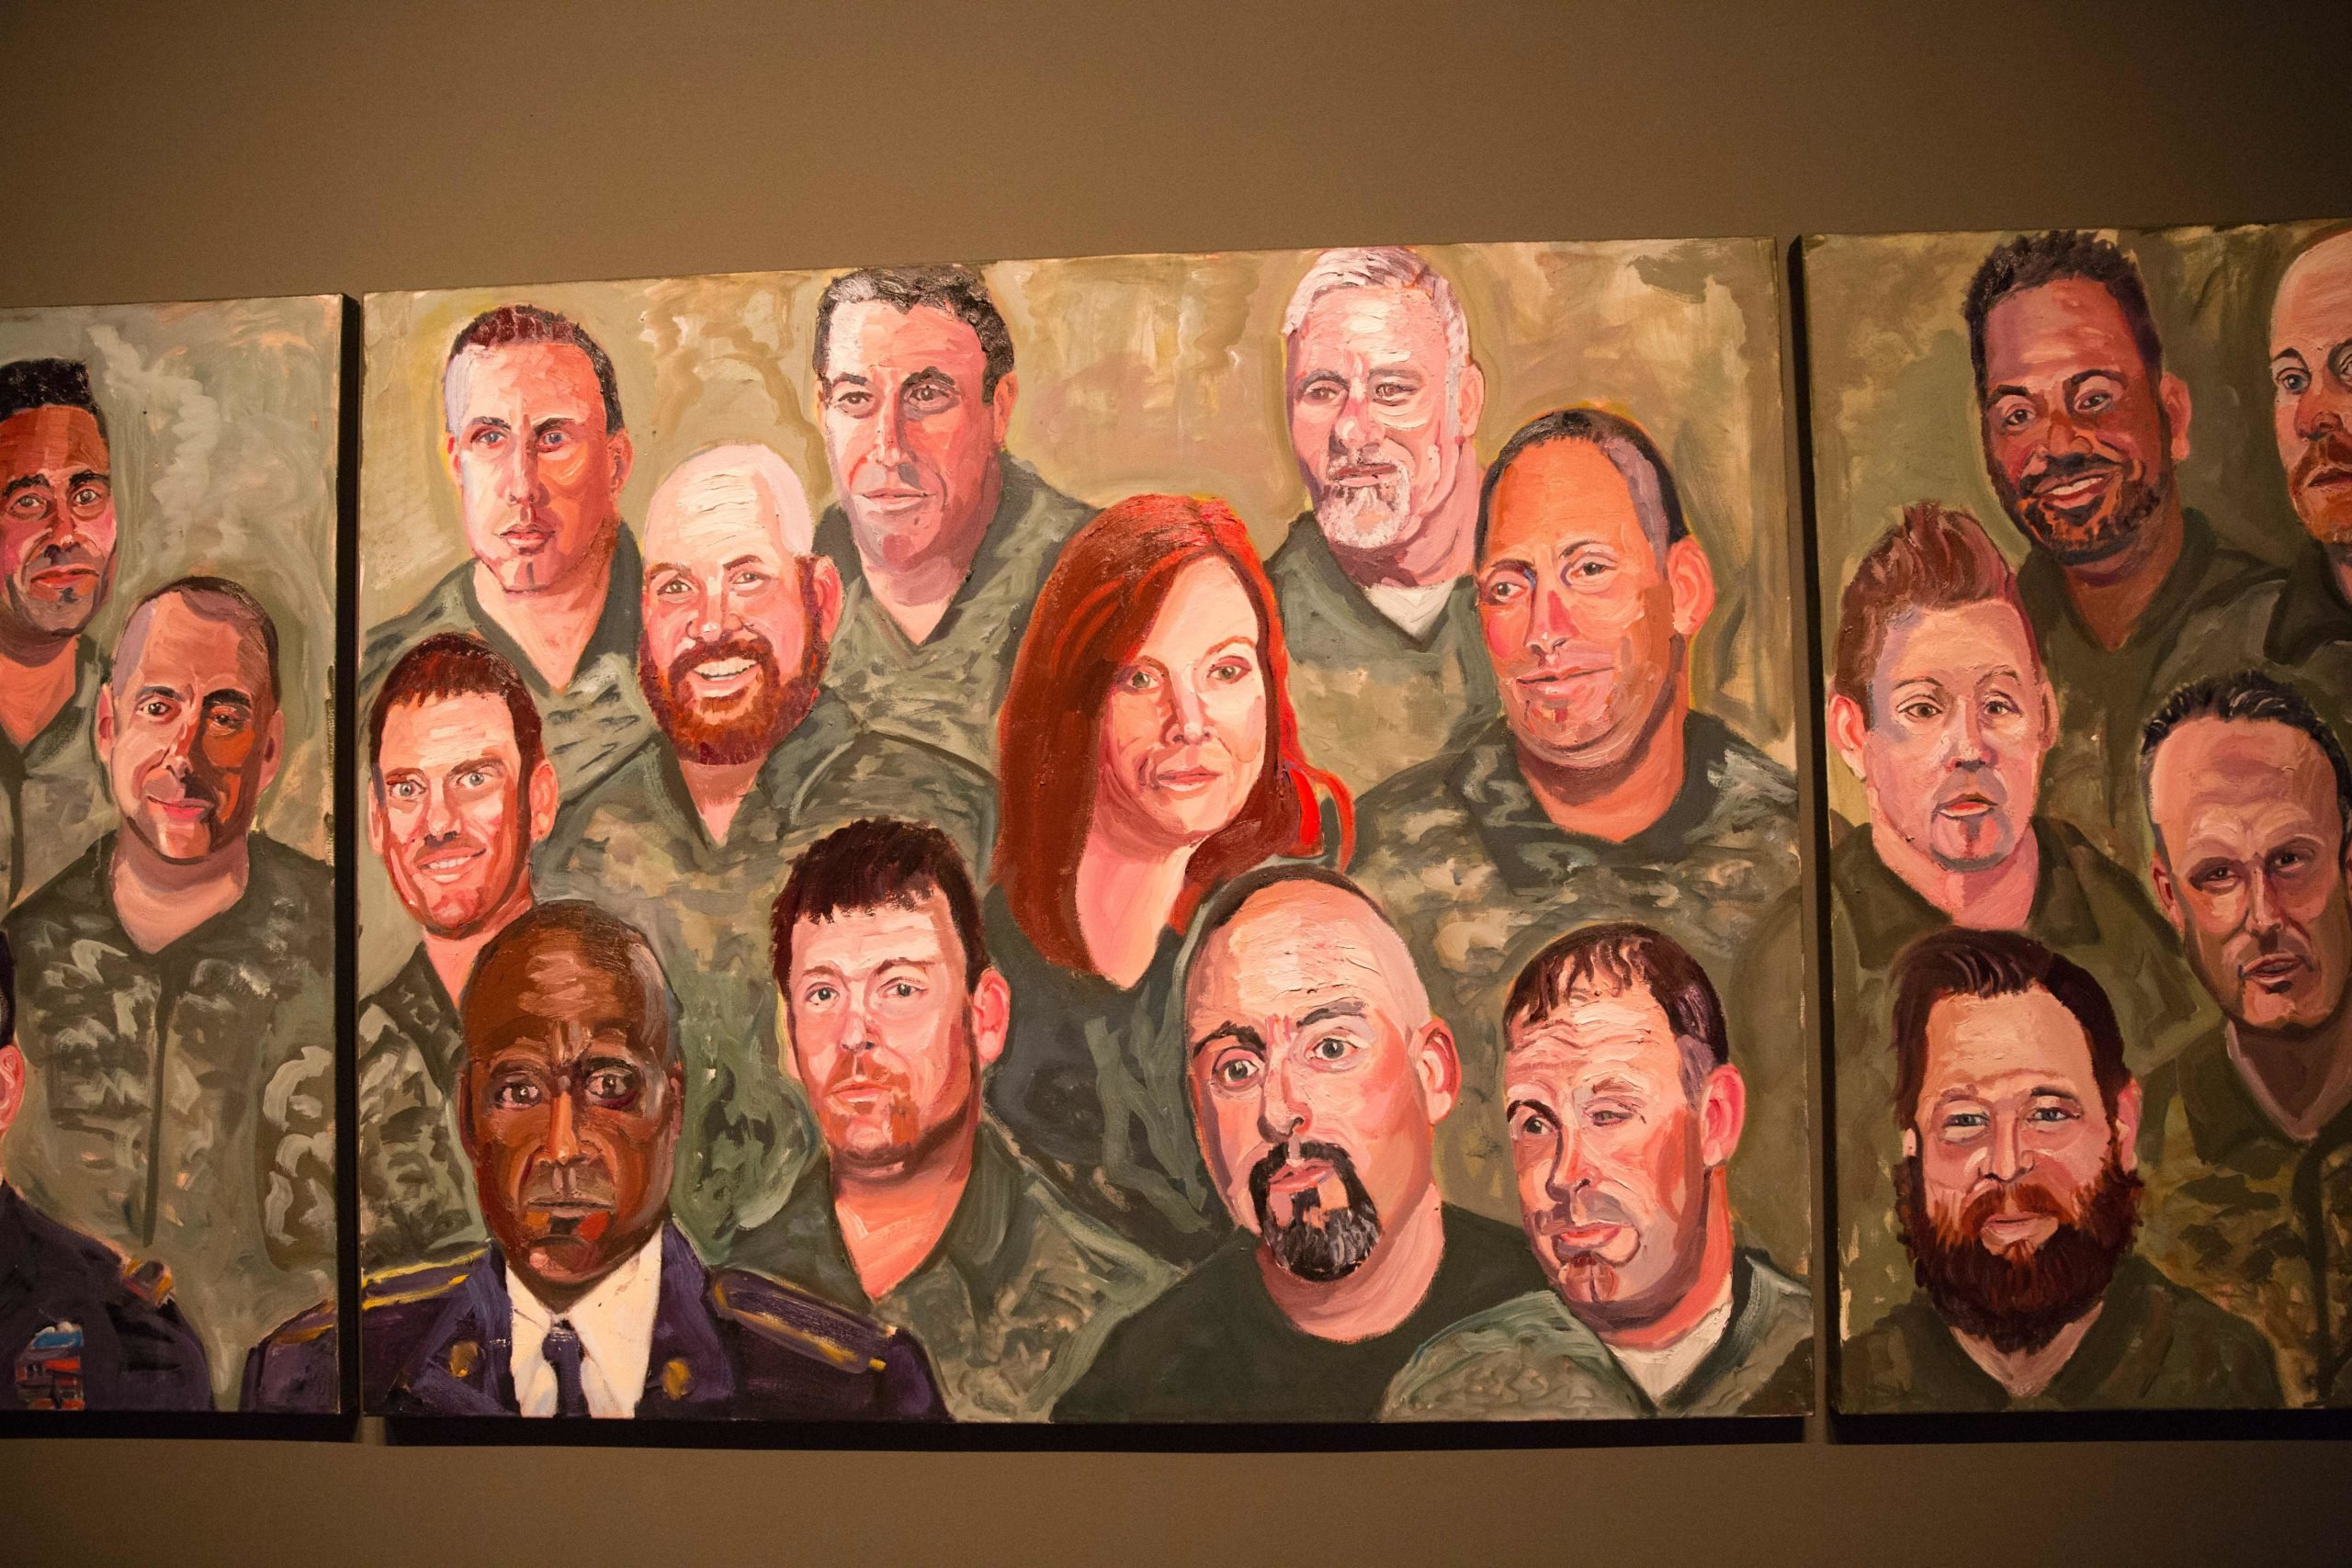 """Paintings of wounded US military veterans painted by former US President George W. Bush hang in """"Portraits of Courage"""", a new exhibit at the George W. Bush Presidential Library and Museum in Dallas, Texas, on February 28, 2017. (Photo by LAURA BUCKMAN/AFP via Getty Images)"""